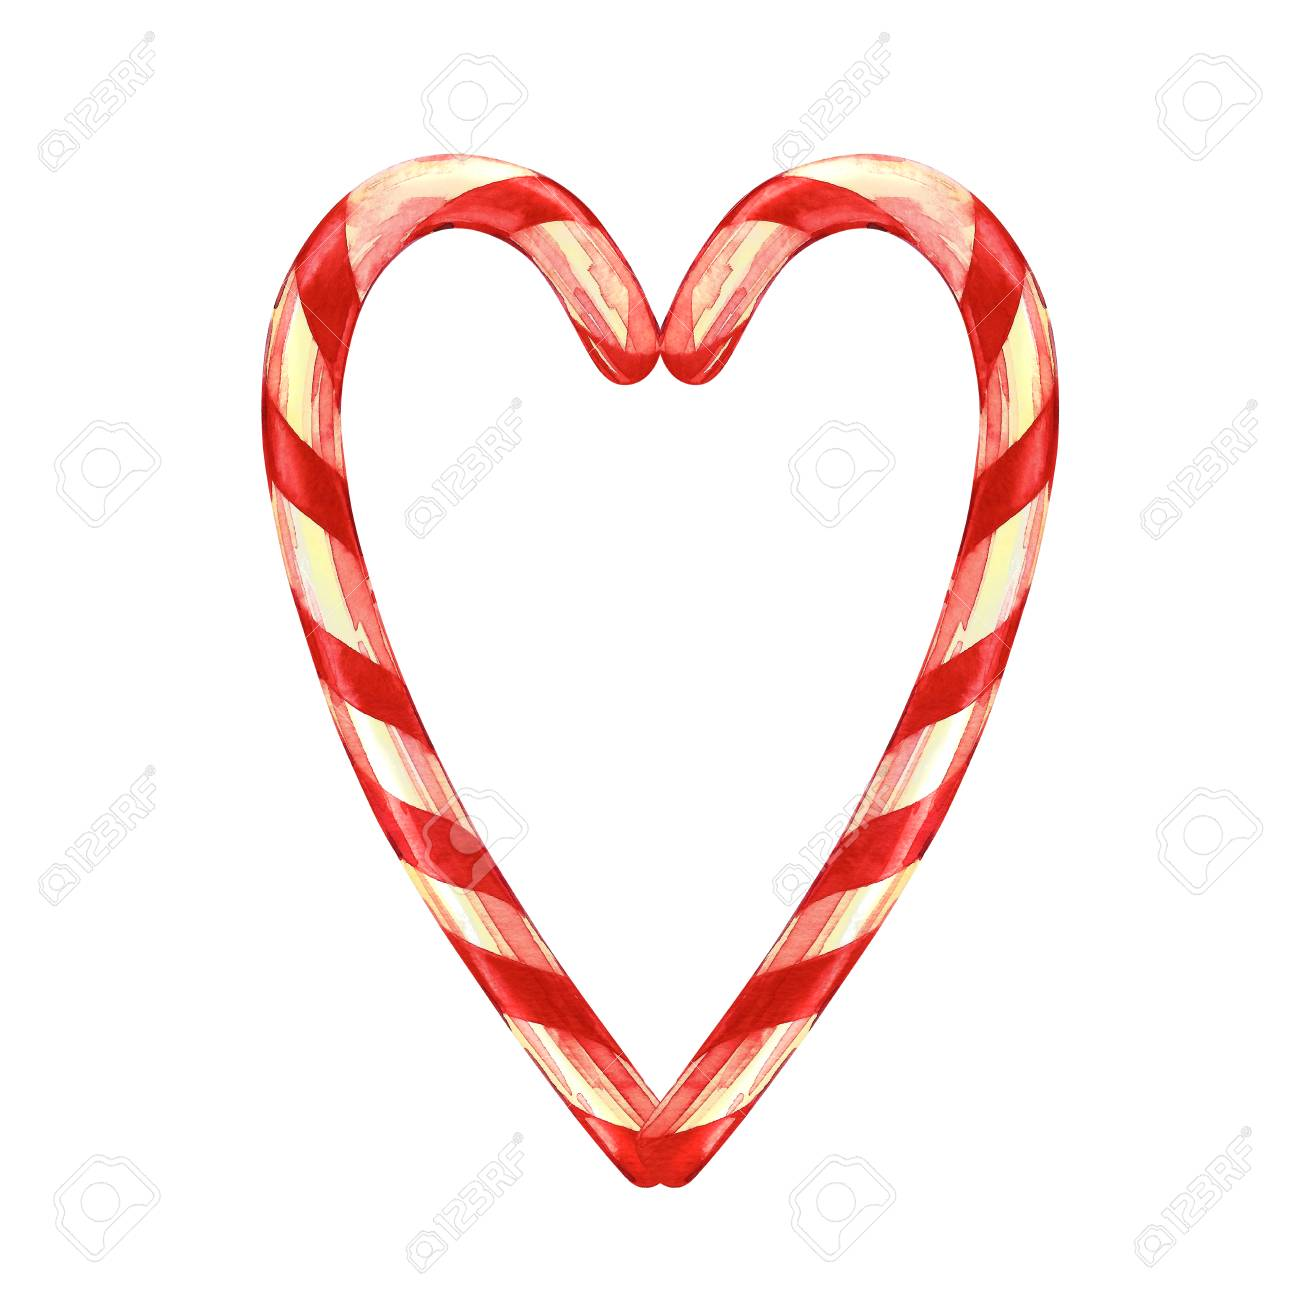 Christmas Heart Png.Stock Illustration